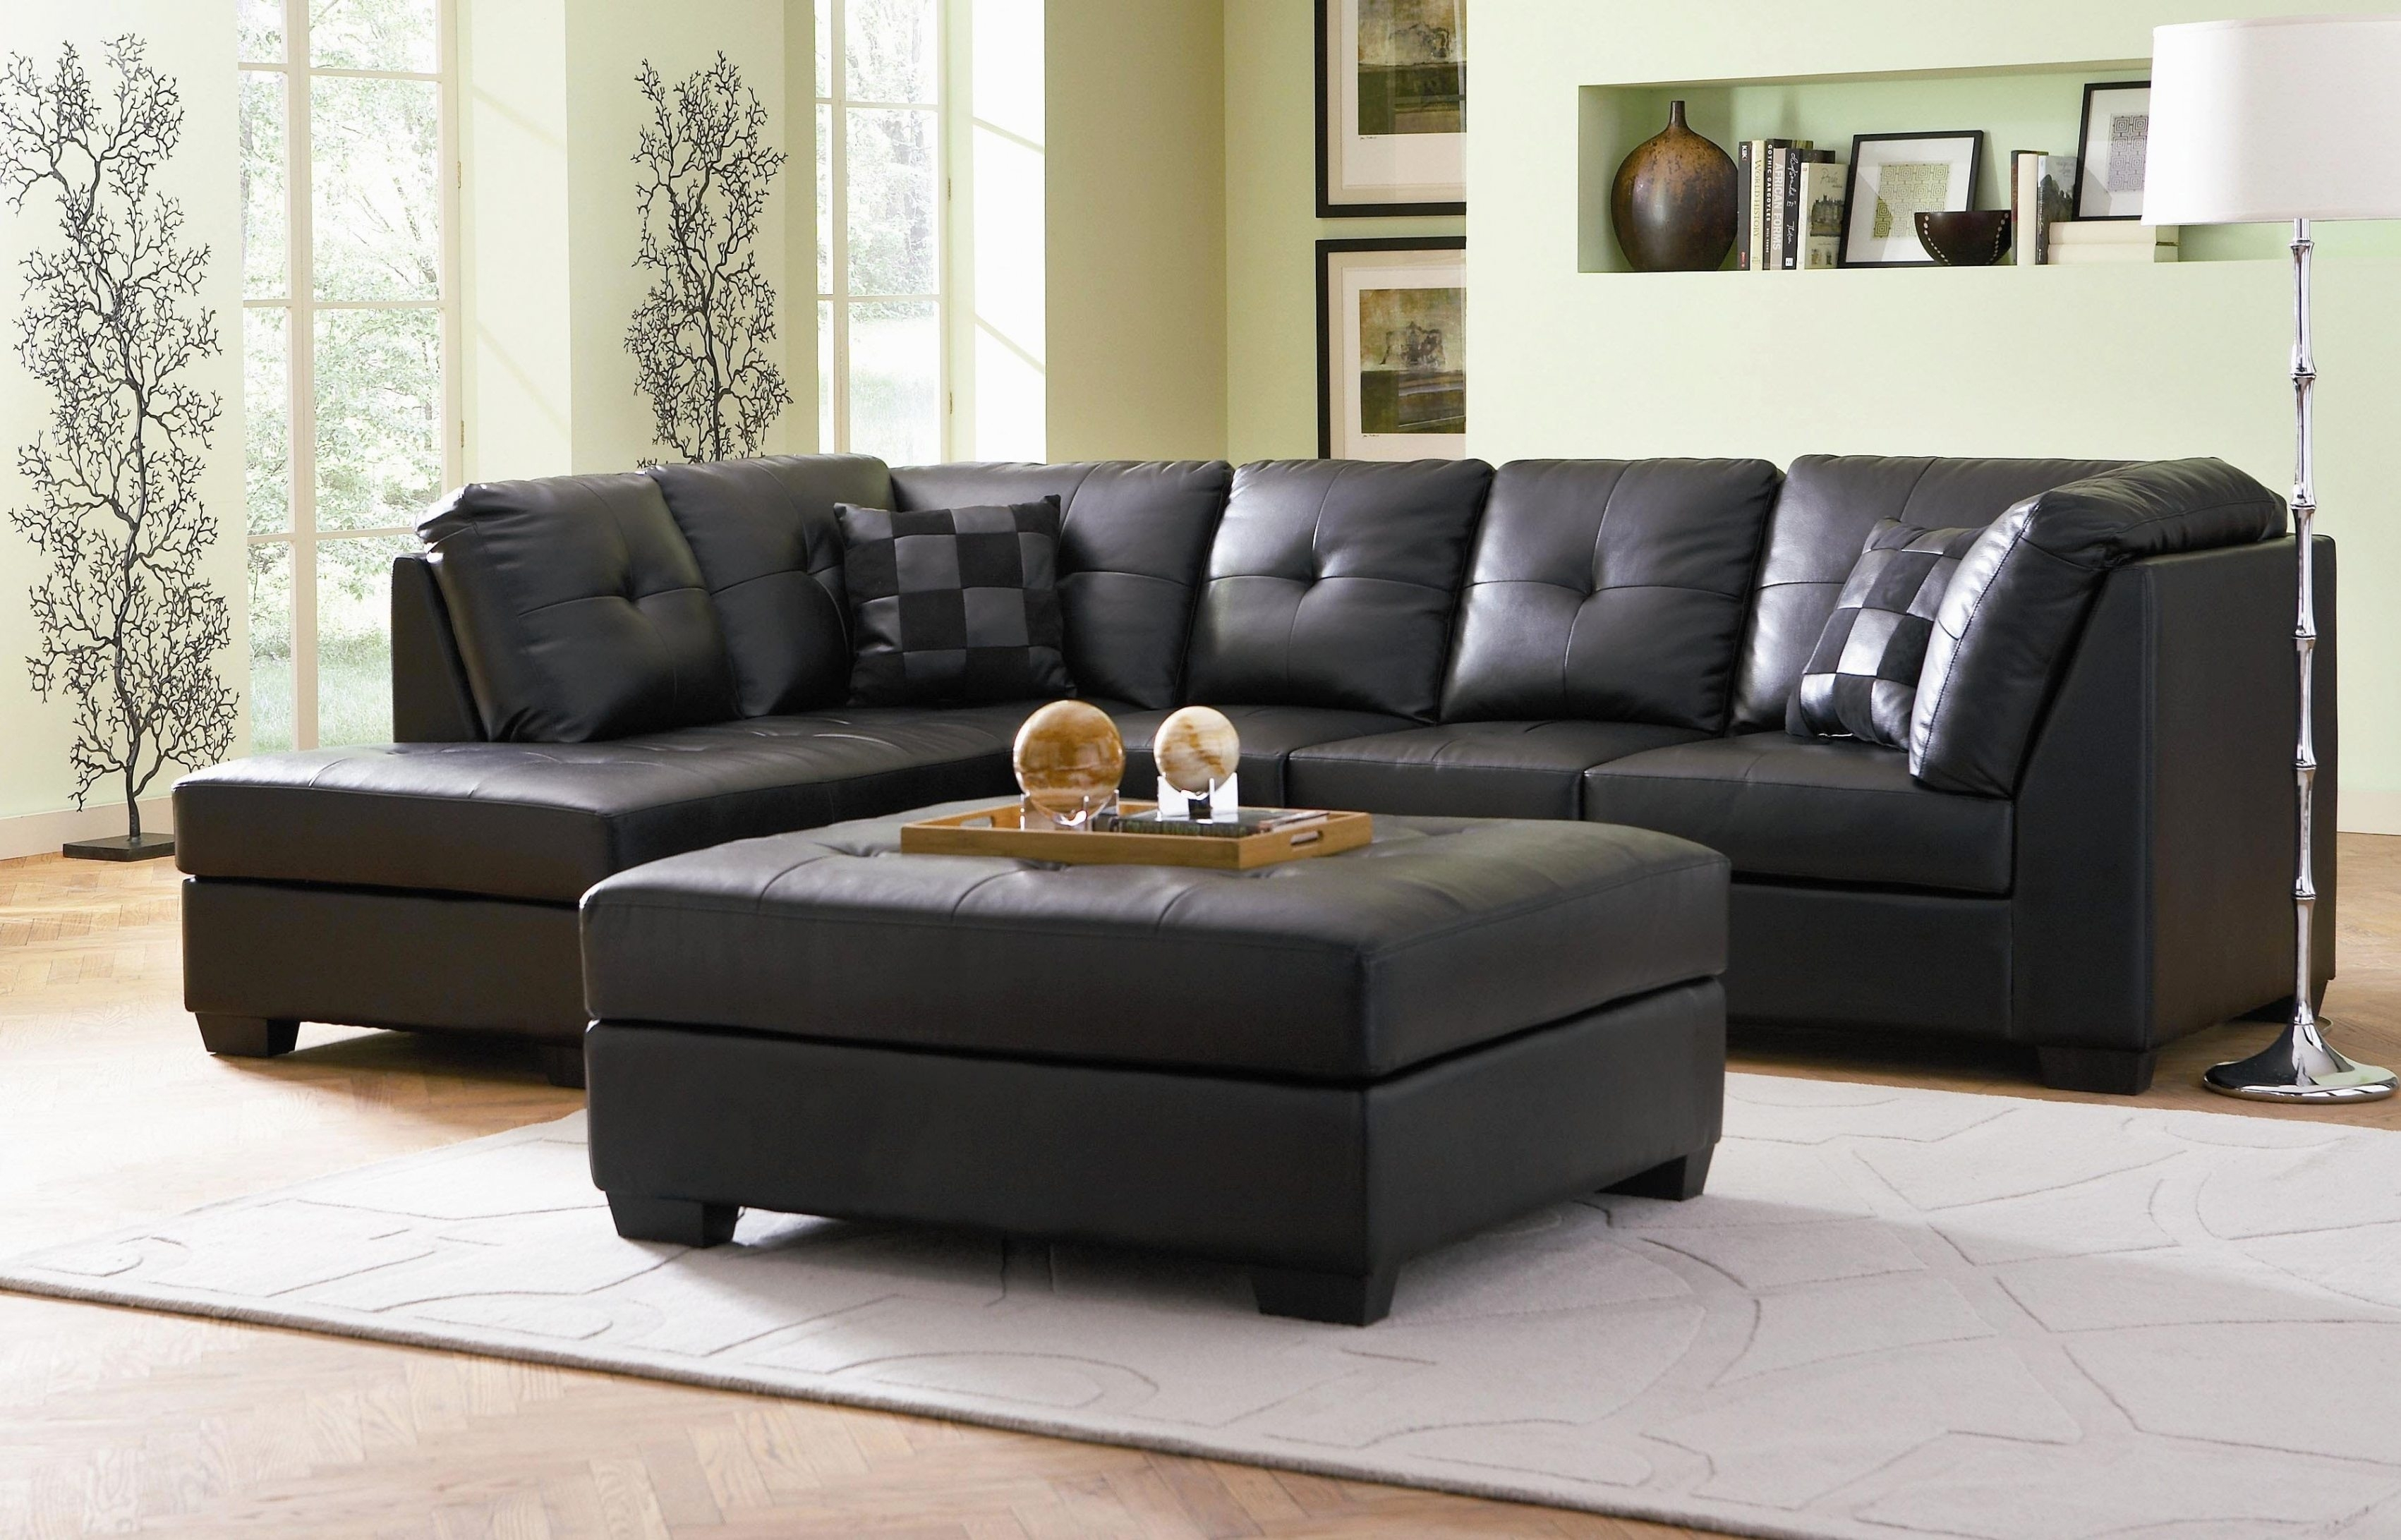 Couches For Under 200 #3 Cheap Sectional Sofas Under 300 | Bobs Inside Sectional Sofas Under (View 7 of 10)